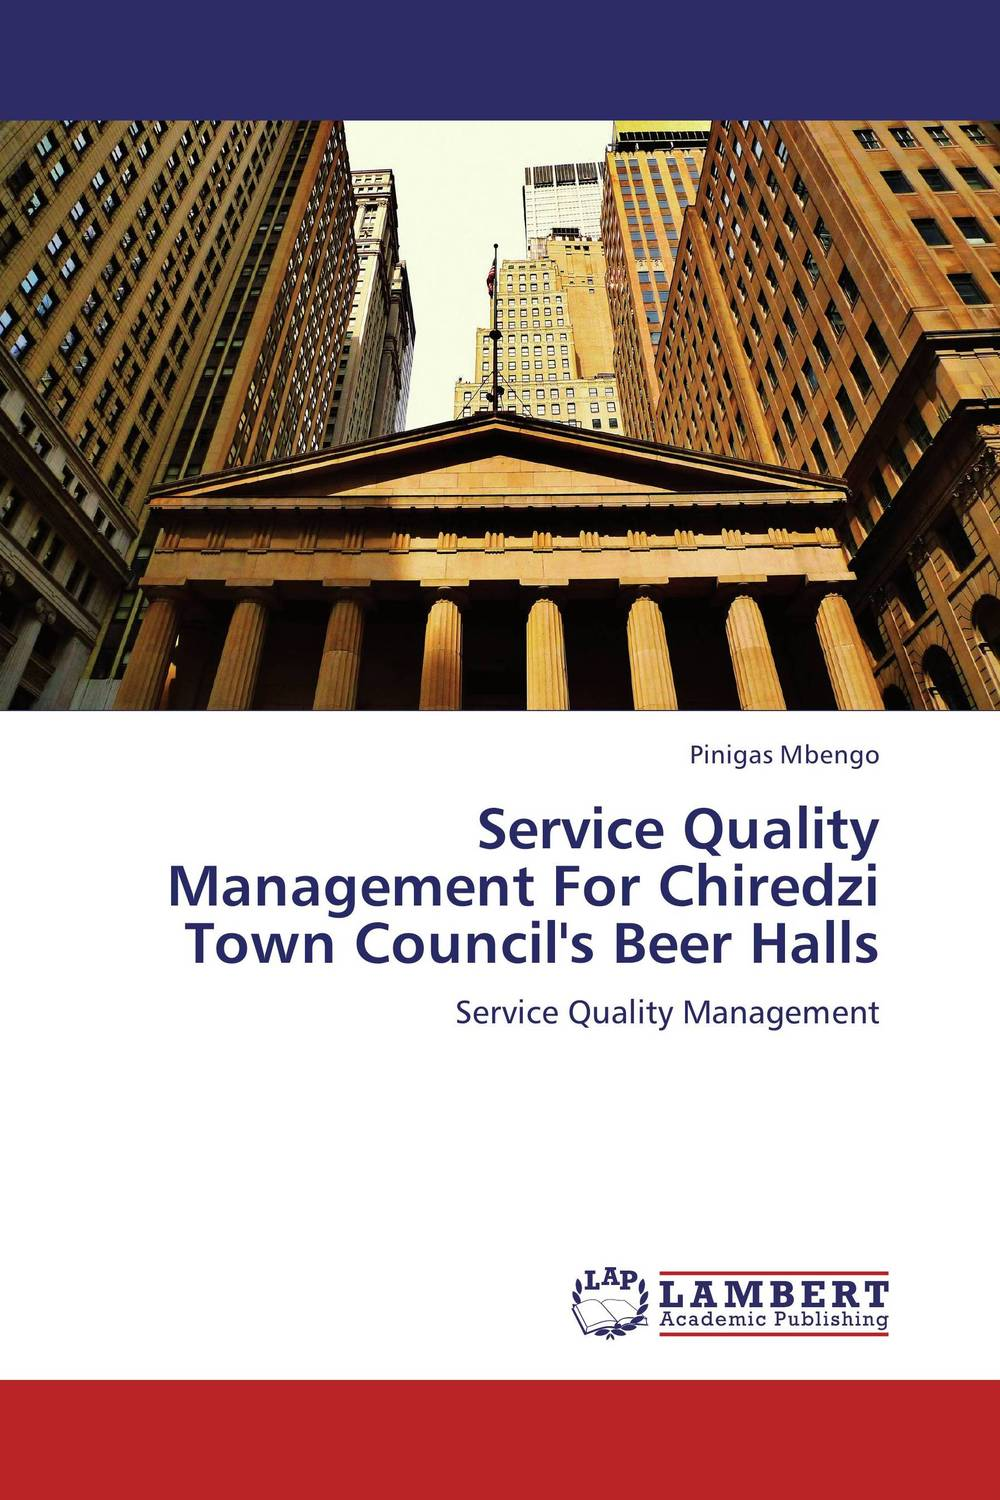 Service Quality Management For Chiredzi Town Council's Beer Halls michel chevalier luxury retail management how the world s top brands provide quality product and service support